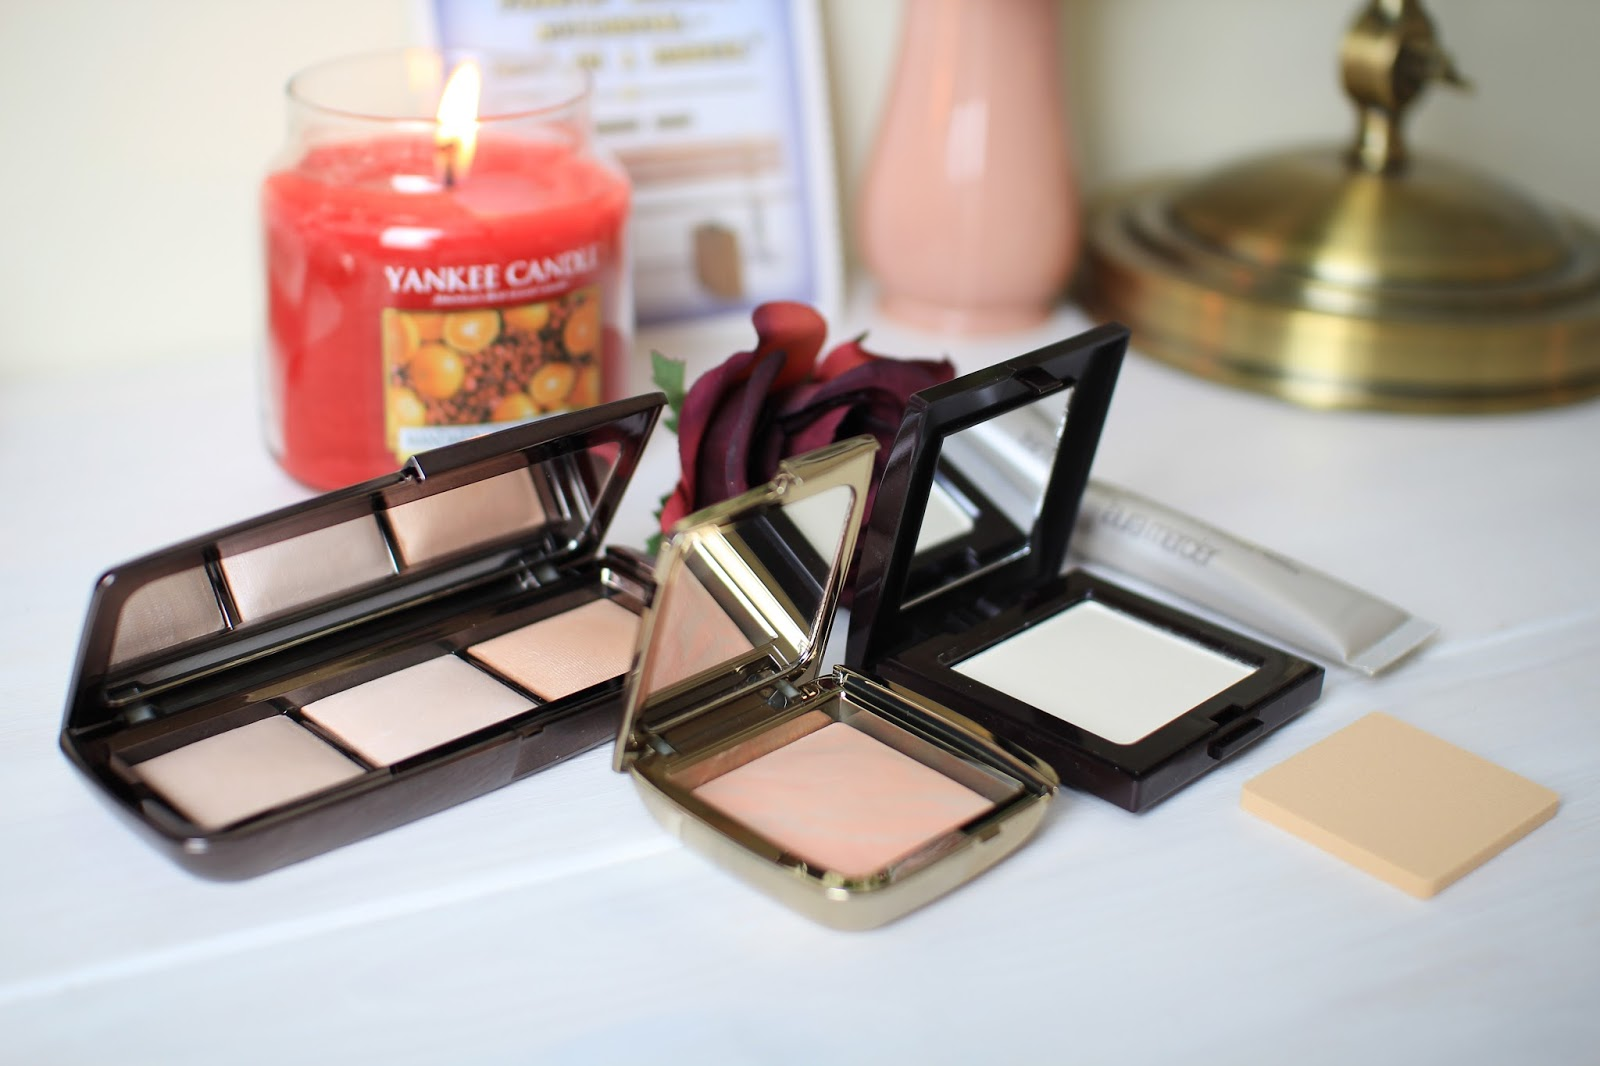 The Hourglass Ambient Lighting Palette, Dim Infusion Blush and Laura Mercier Pressed Powder